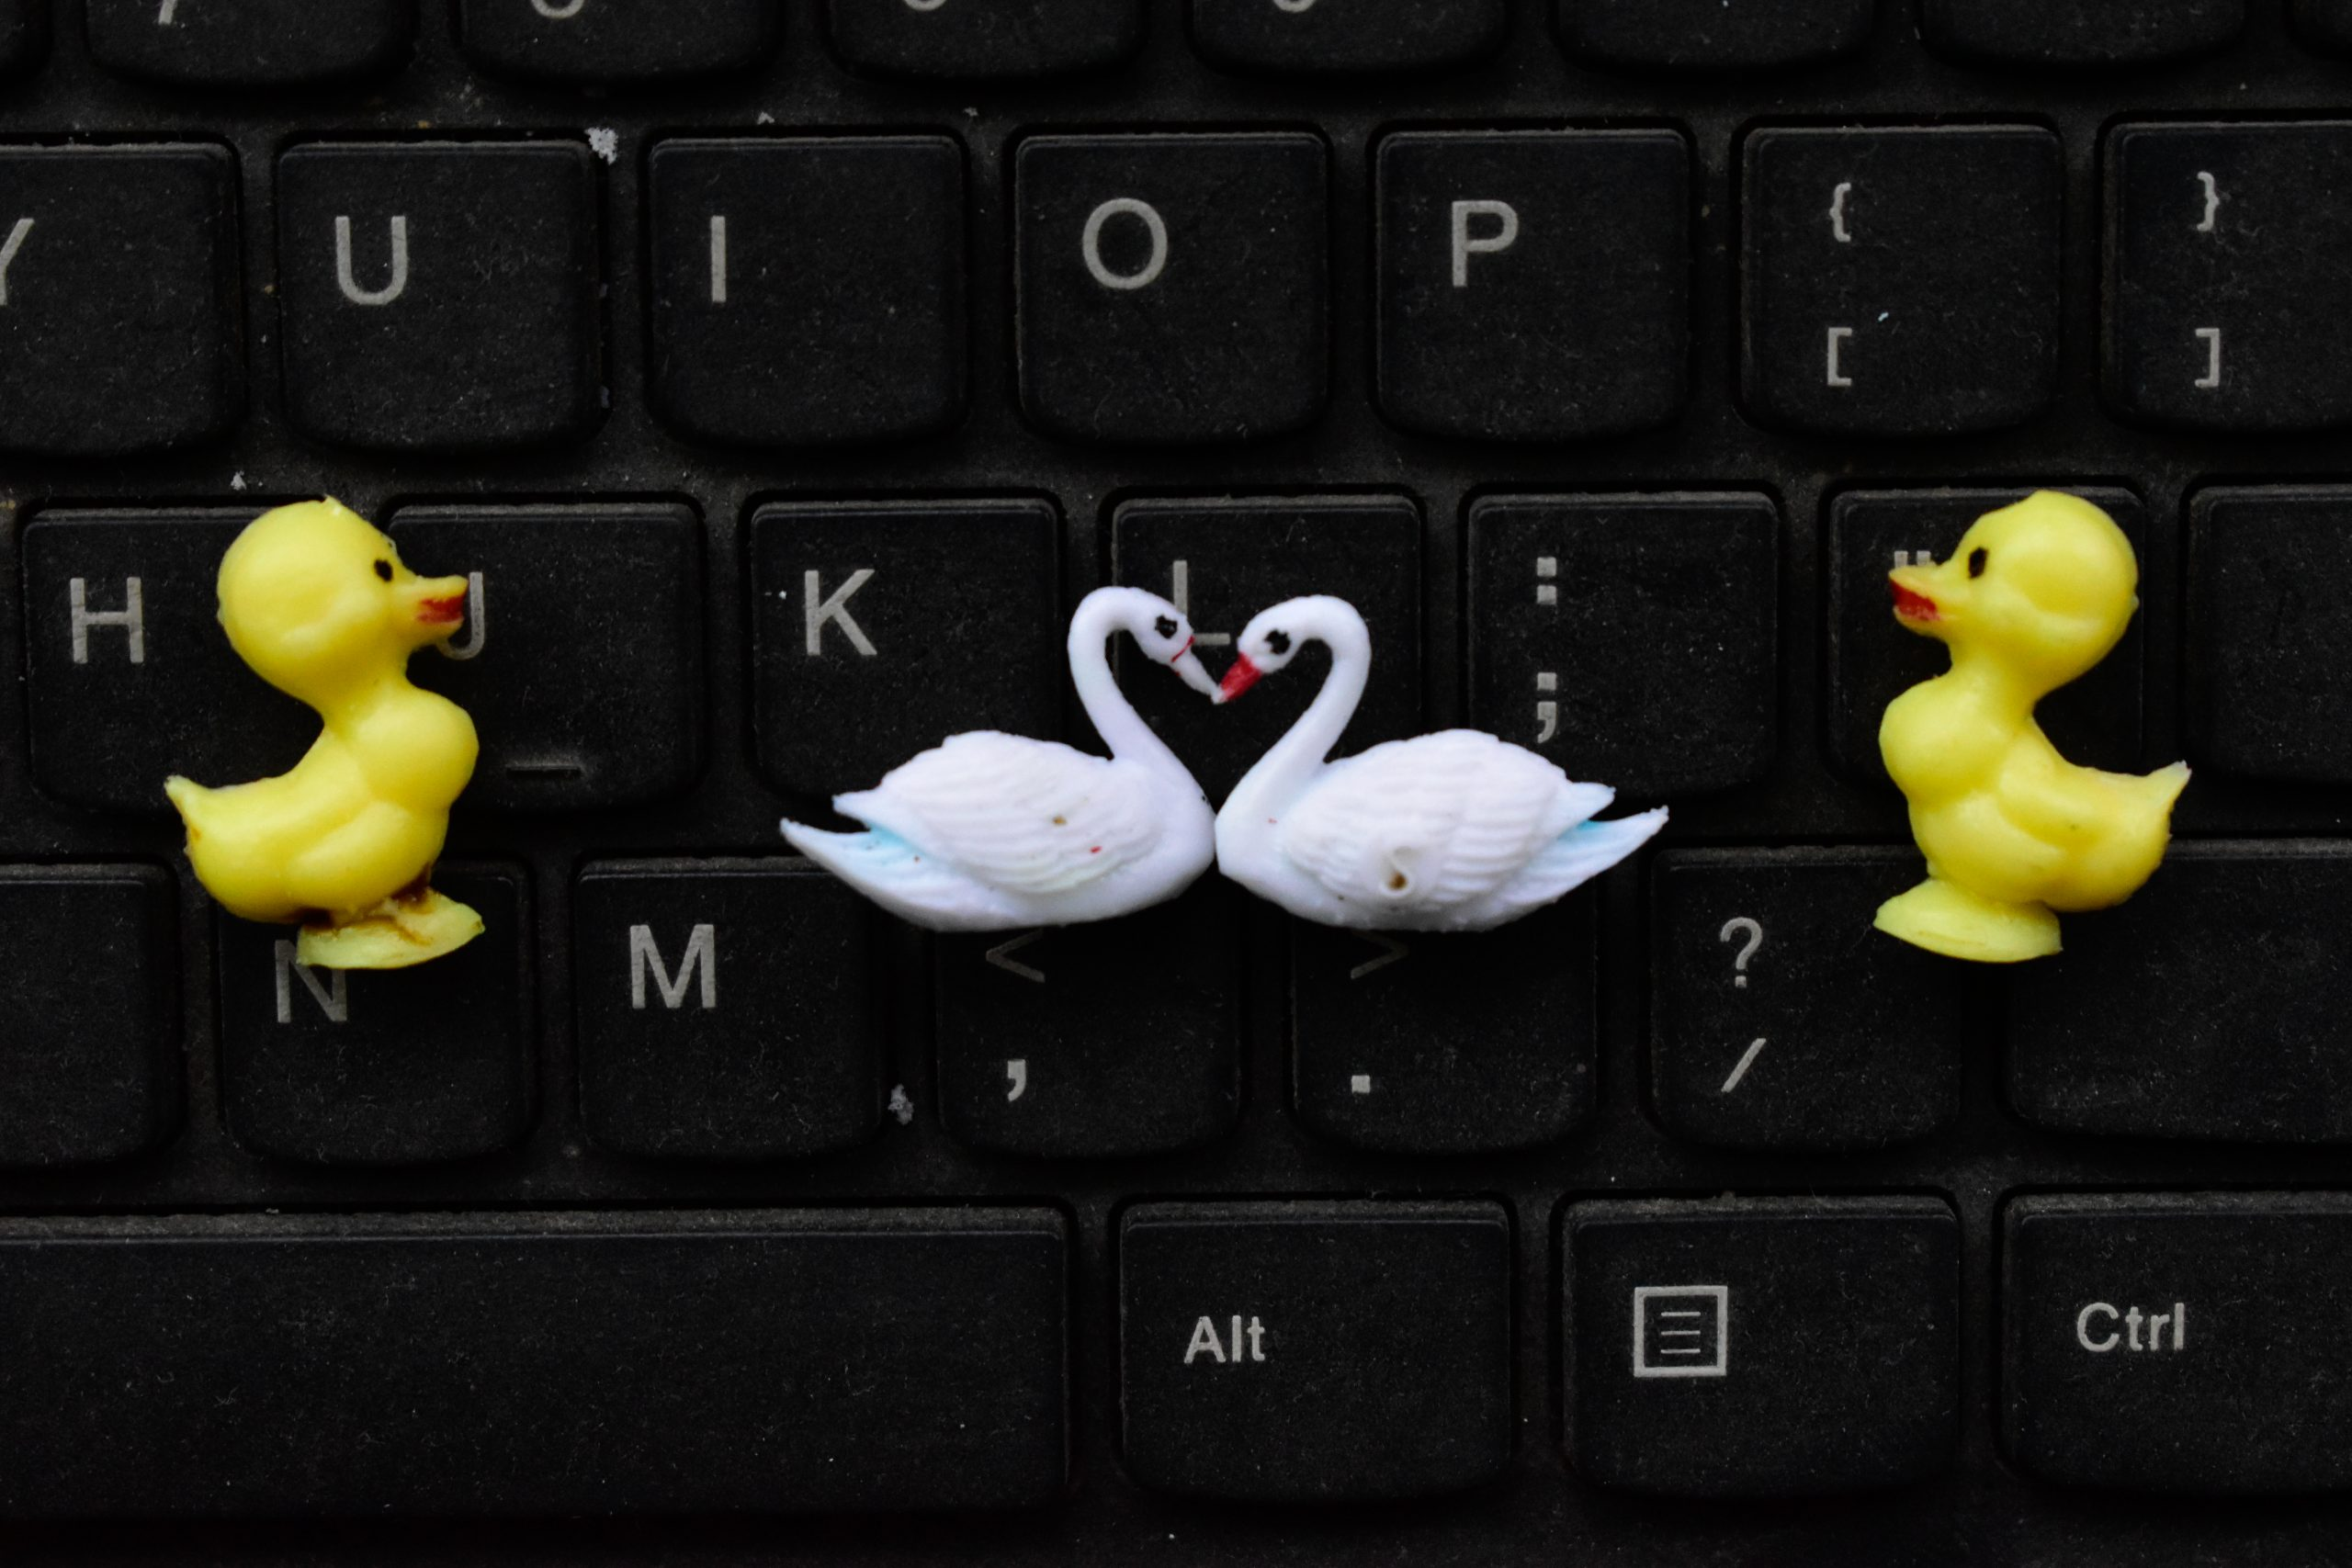 Duck toy on keyboard